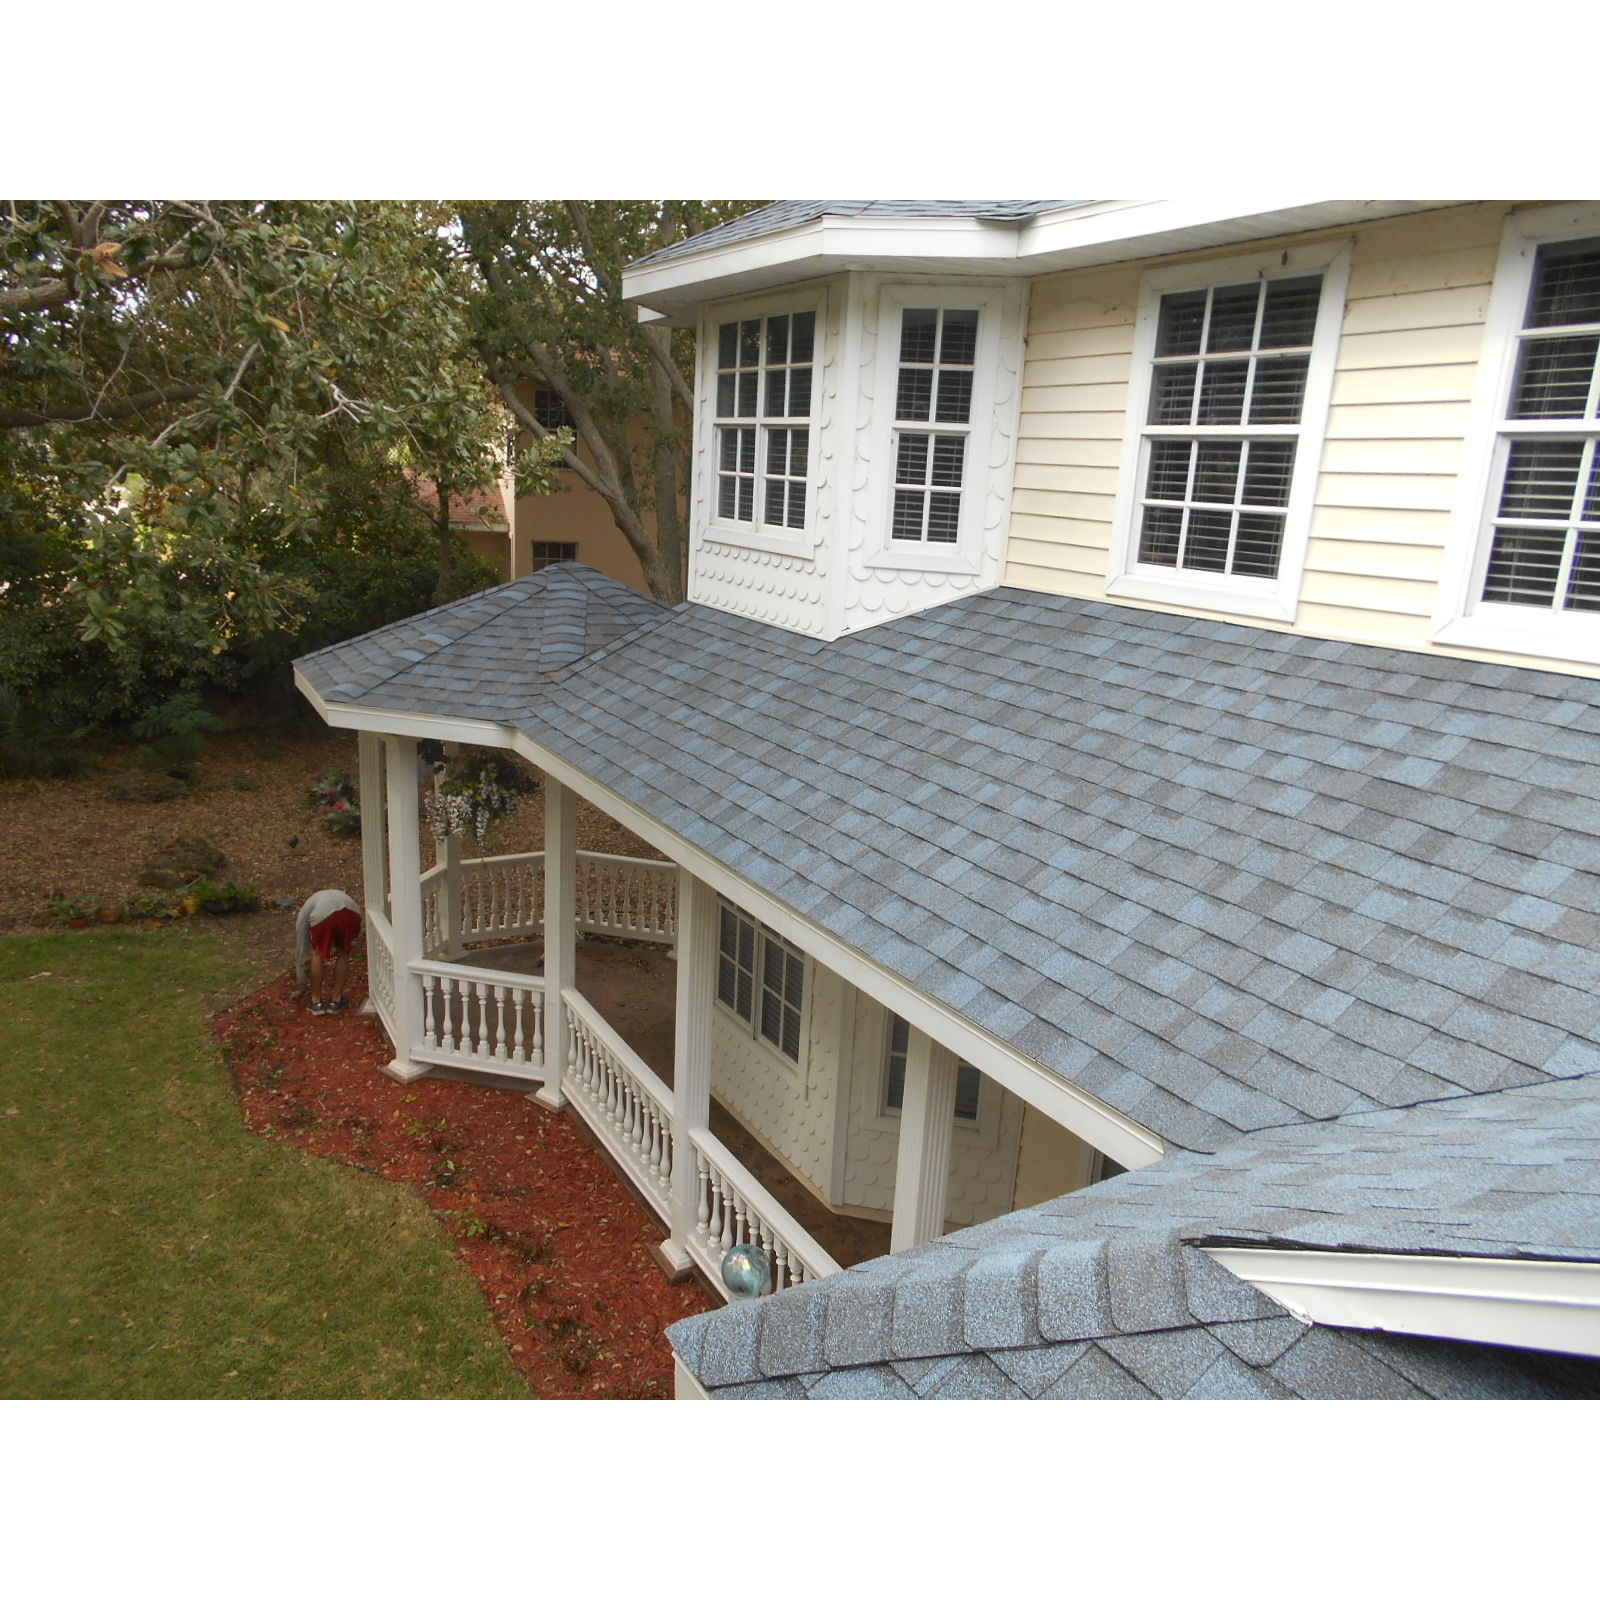 J K Behan Roofing image 32